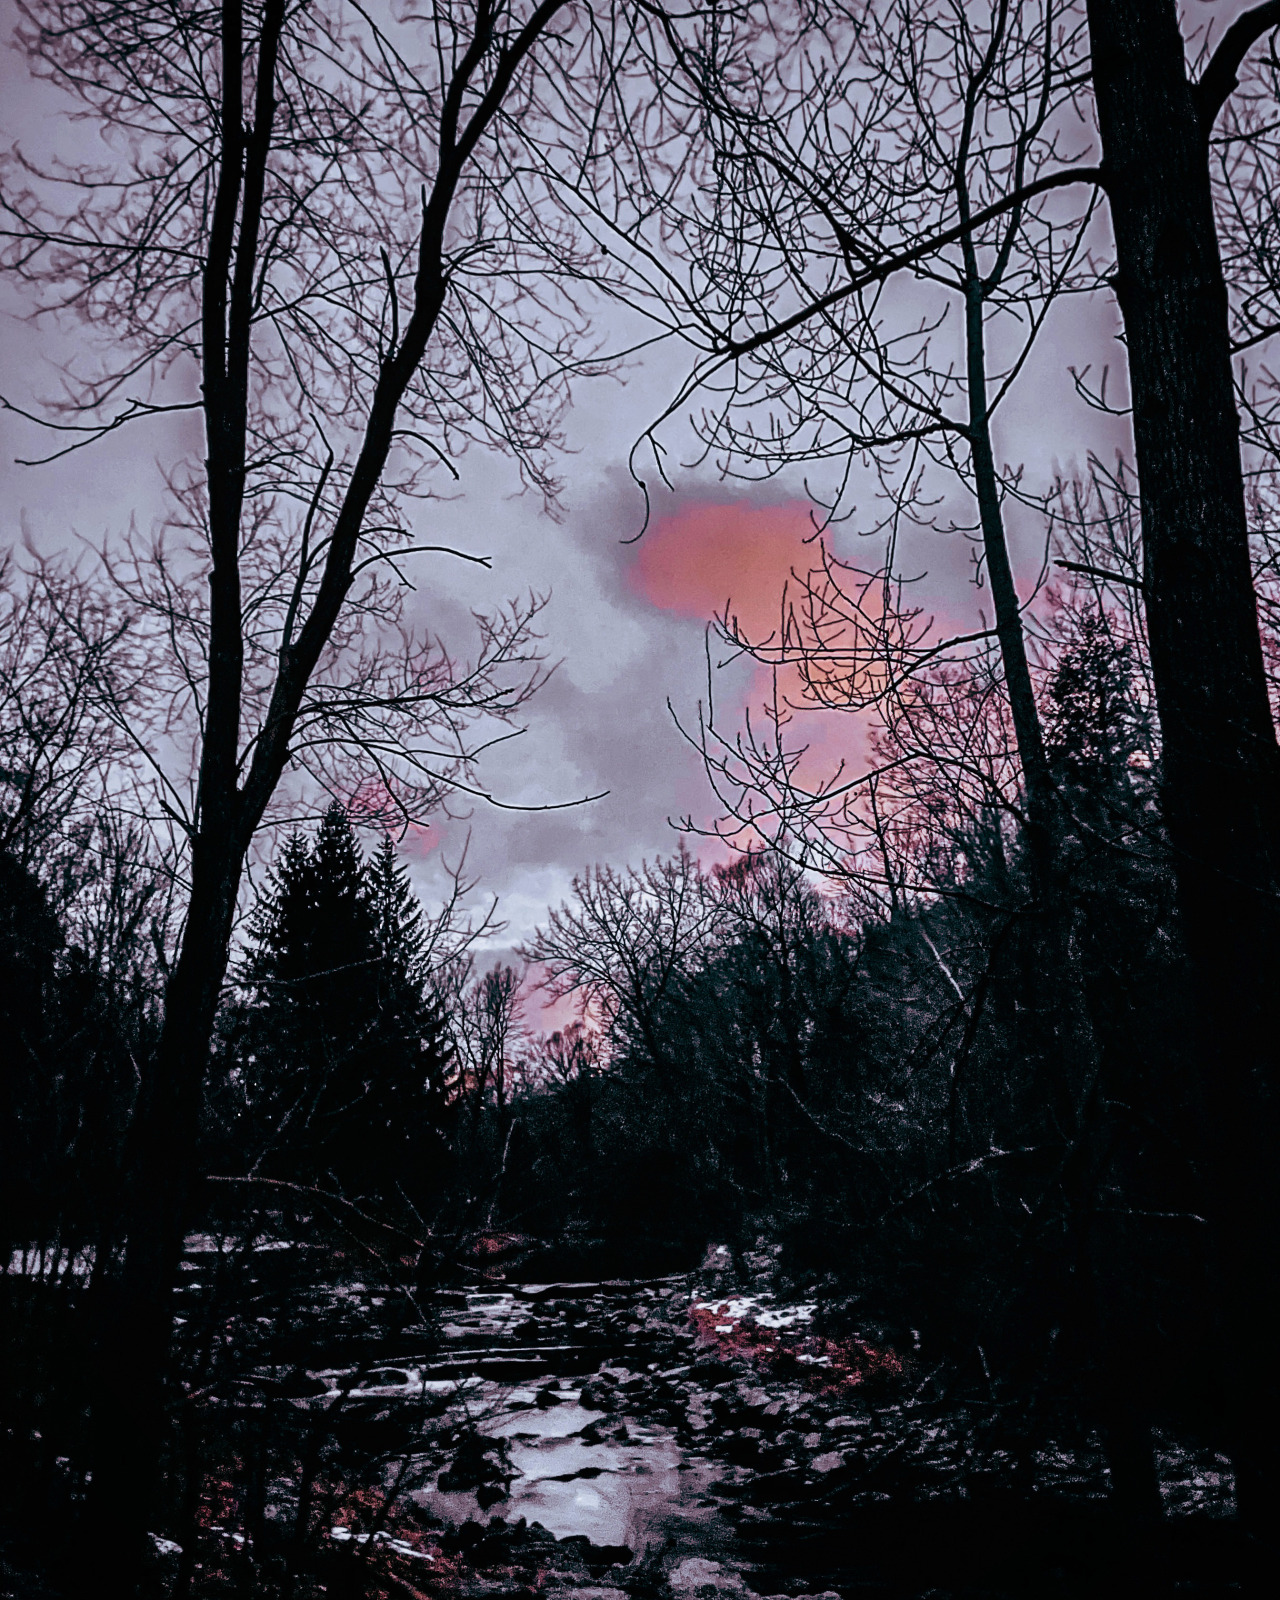 #nature#nature blog#mostly nature#go outside#winter#canada#nature photography#photography#my photography#hiking#sunset#the sky#ftm#nonbinary #shot on iphone